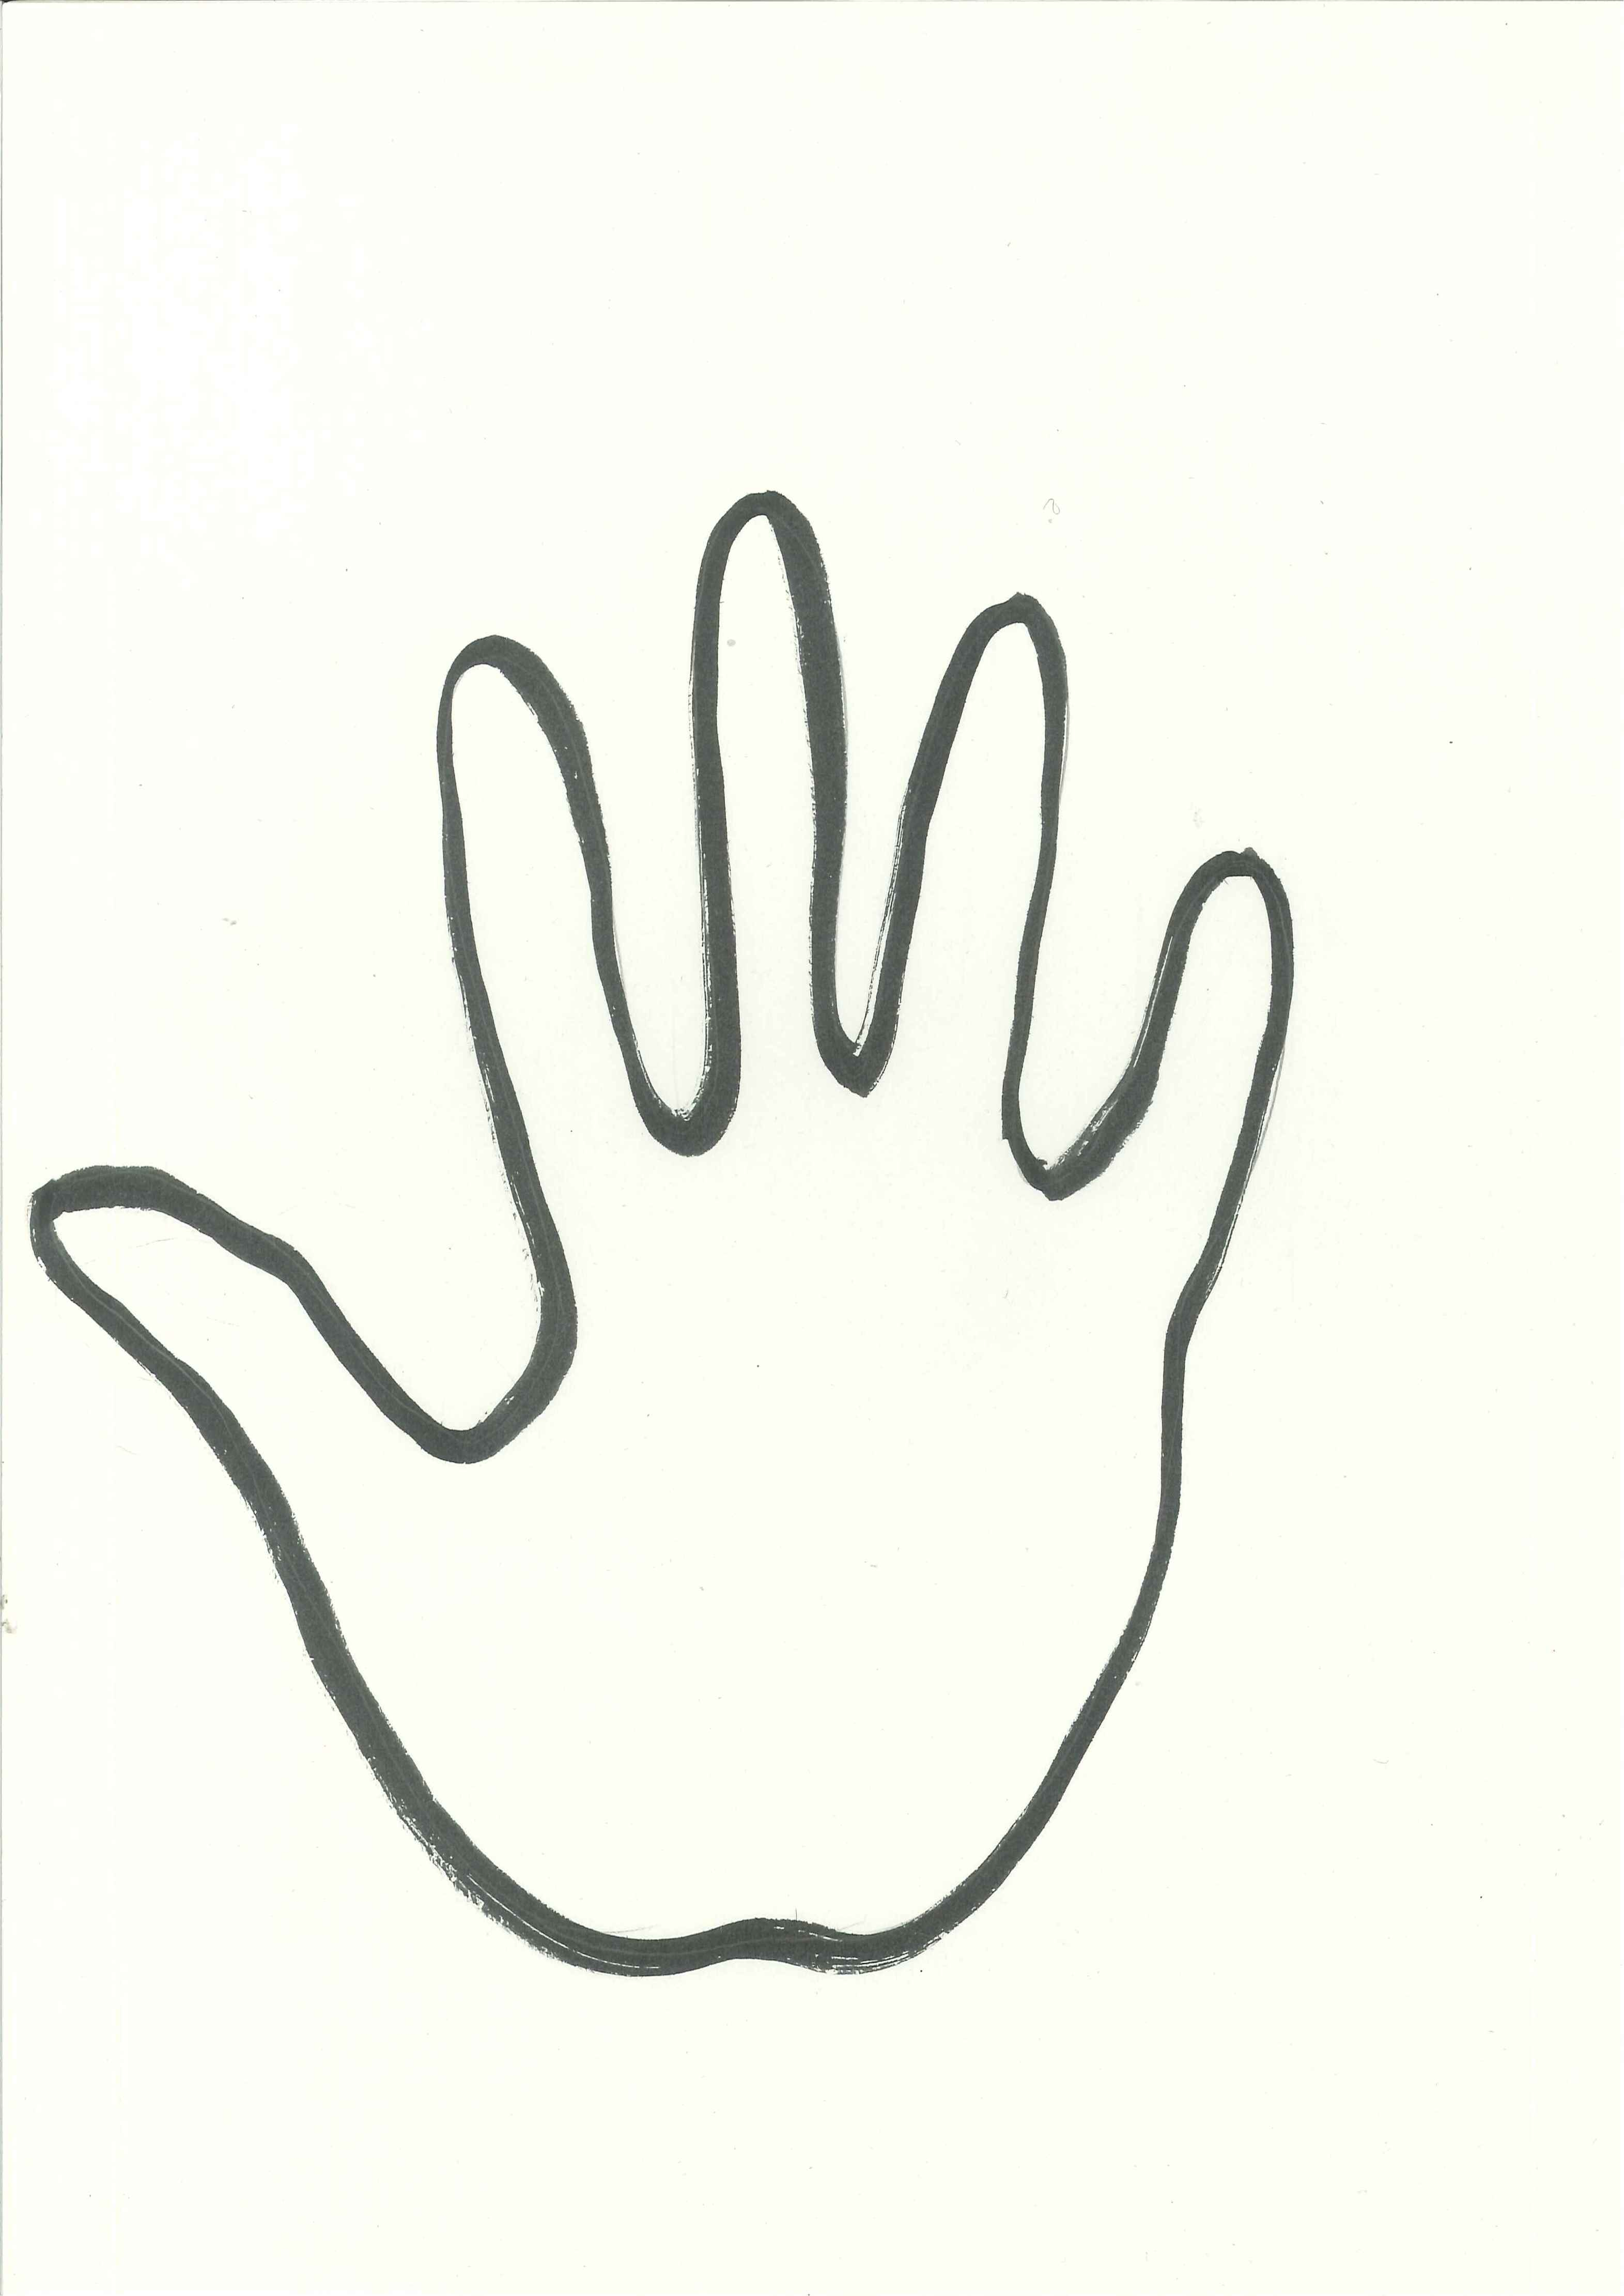 Hand outline left and right clipart free to use clip art resource